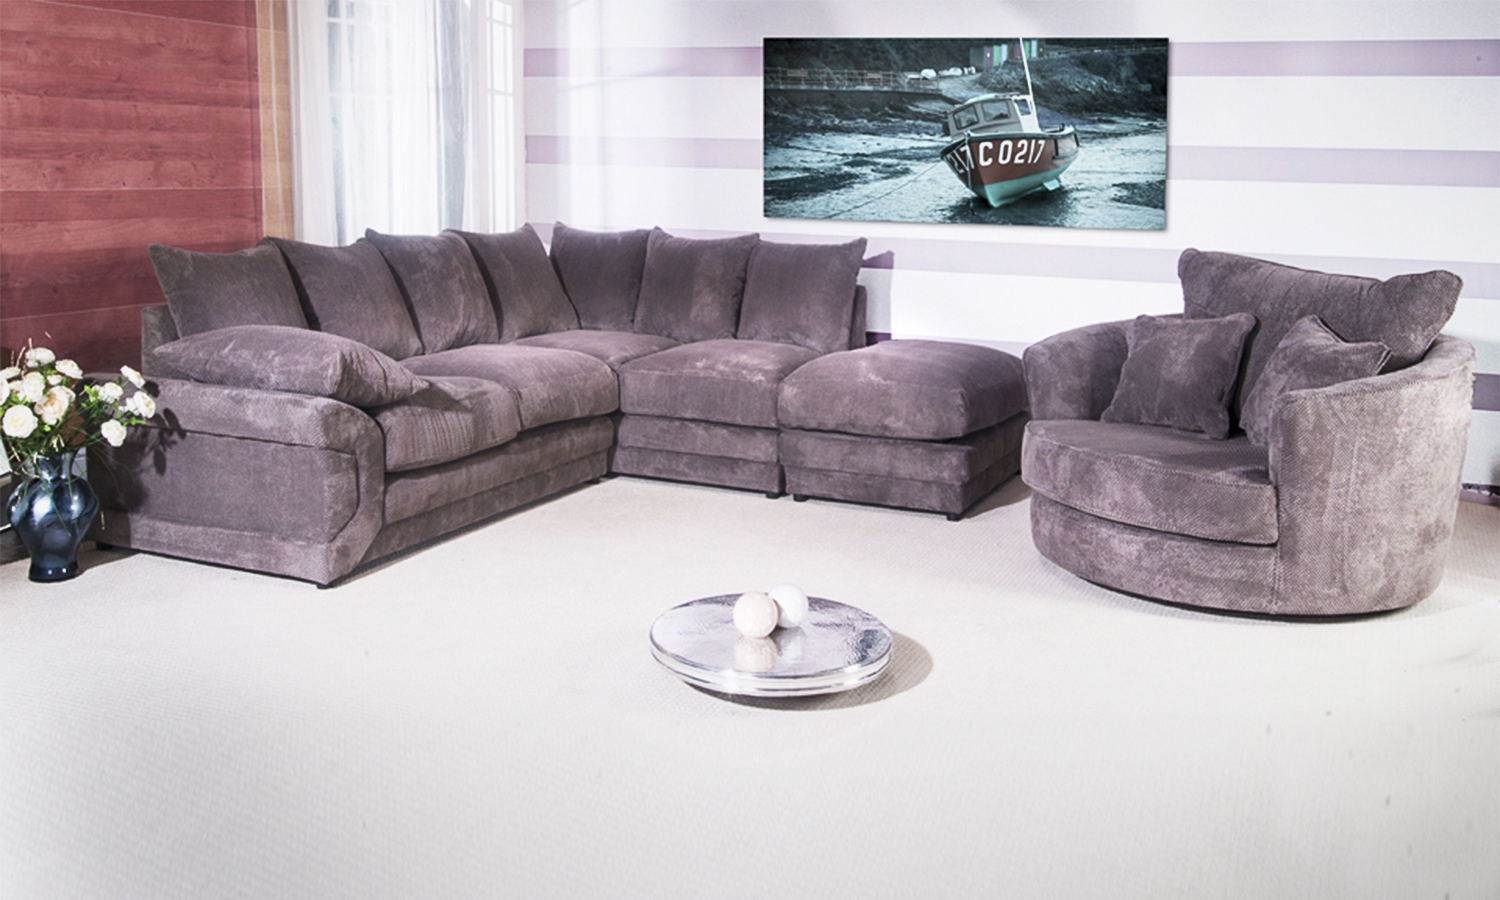 Featured Image of Corner Sofa And Swivel Chairs